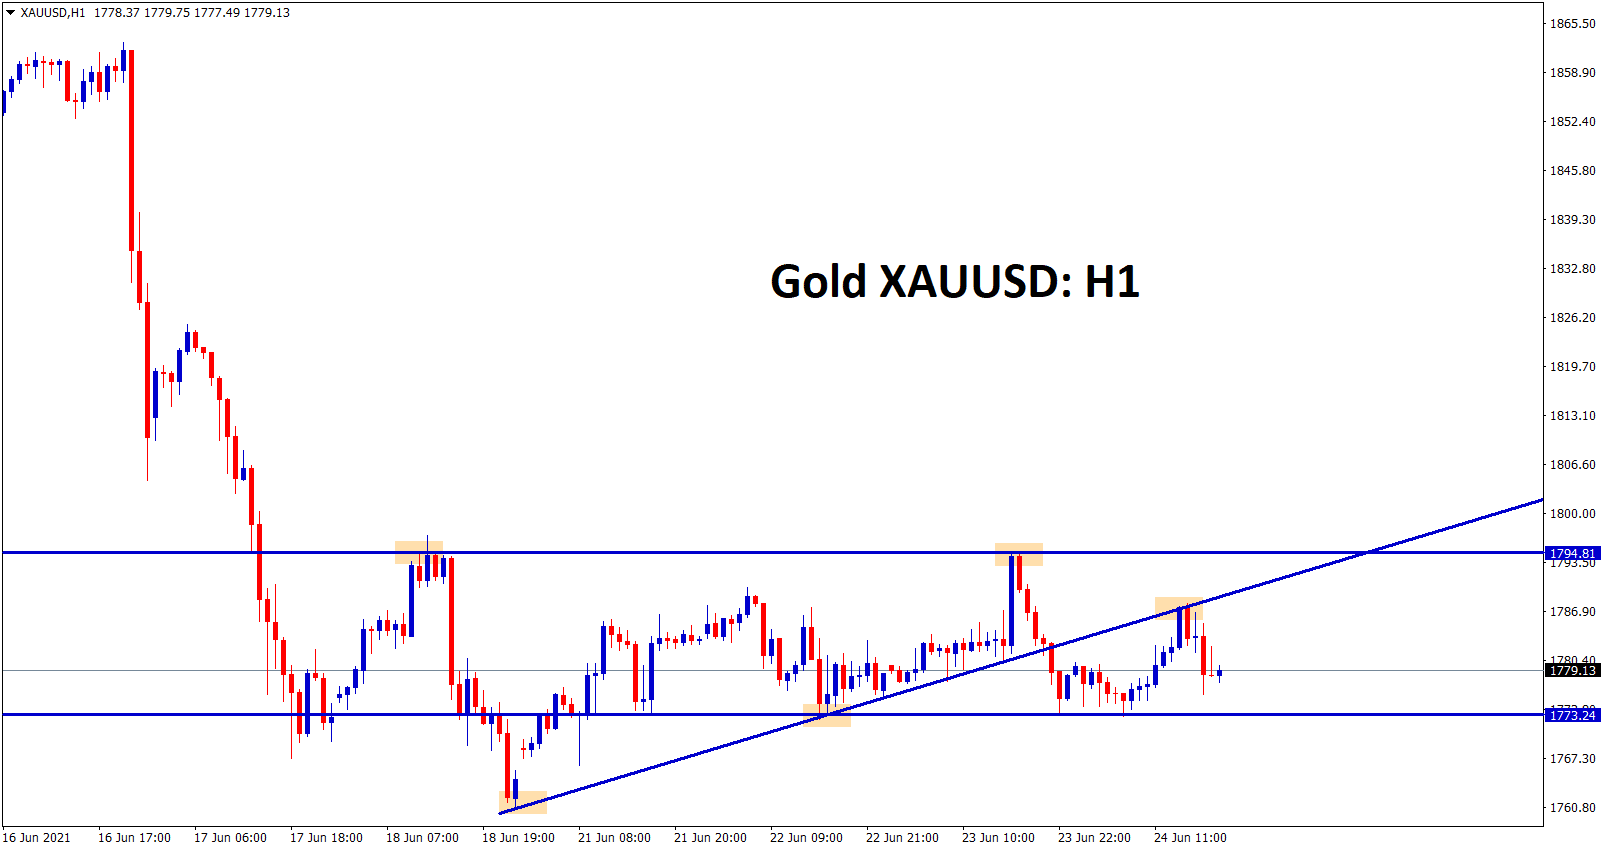 XAUUSD has breakout and retest the Ascending Triangle pattern